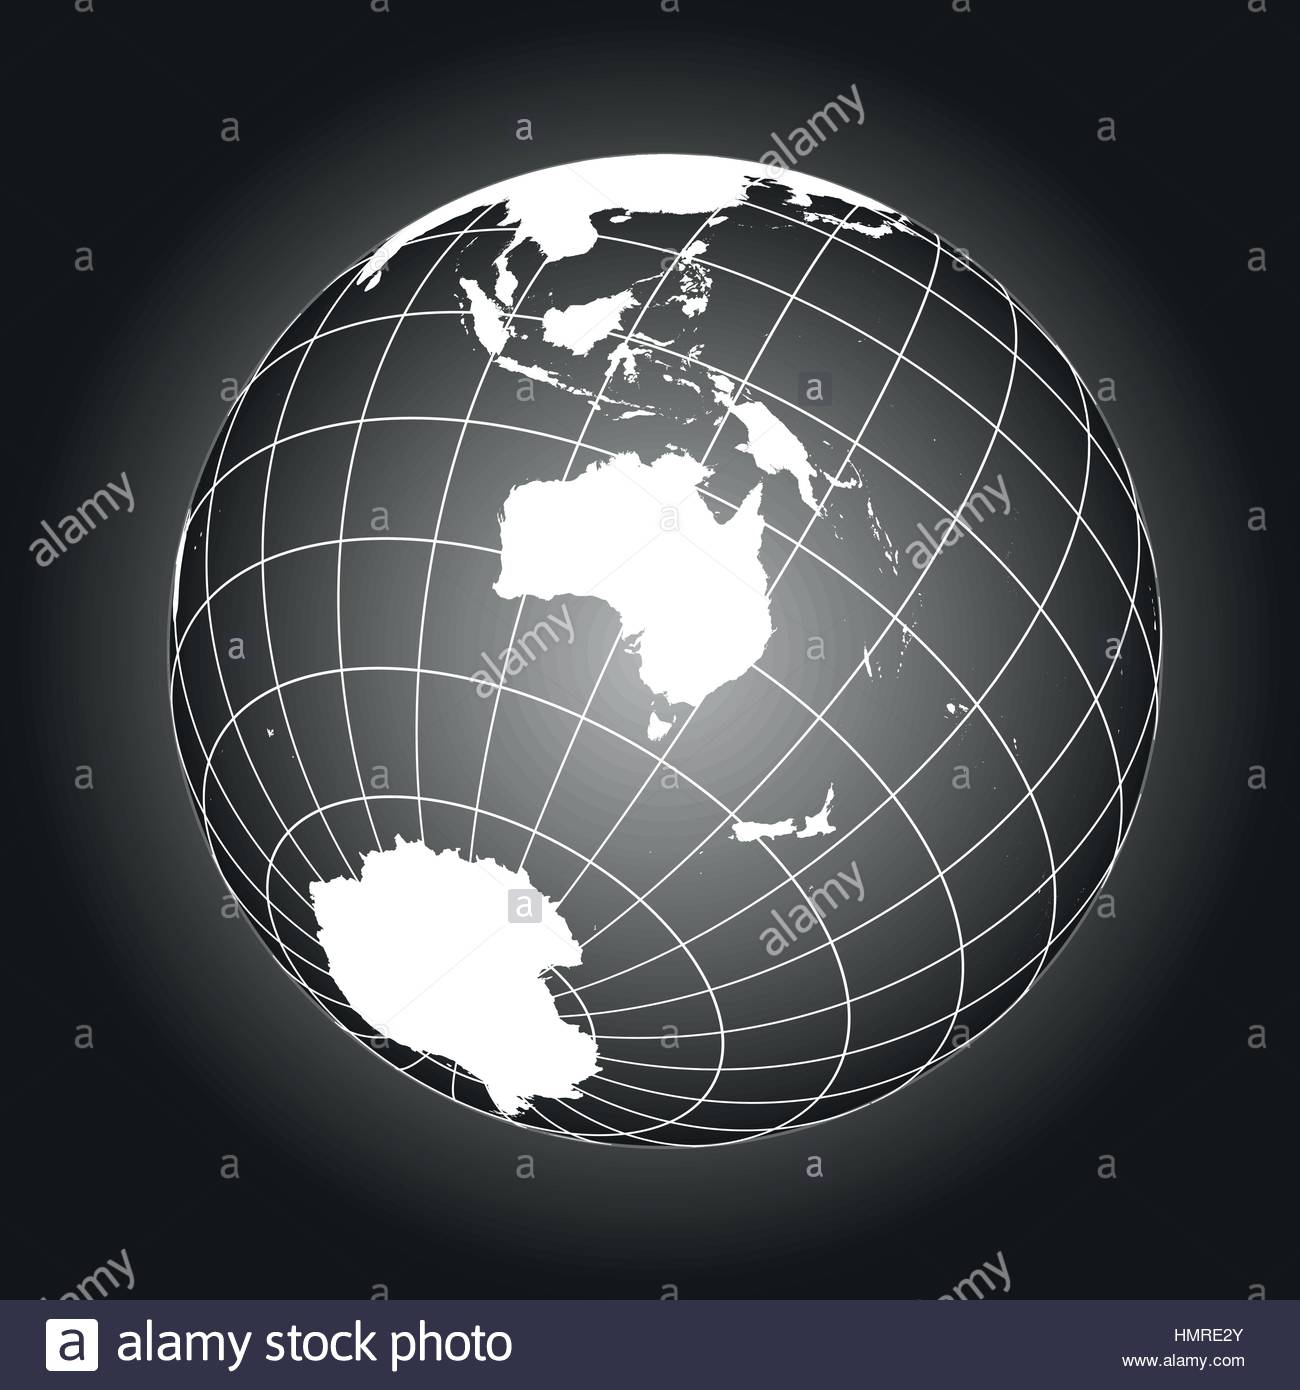 Australia or oceania map australasia asia russia antarctica australia or oceania map australasia asia russia antarctica north pole earth globe worldmap elements of this image furnished by nasa gumiabroncs Image collections